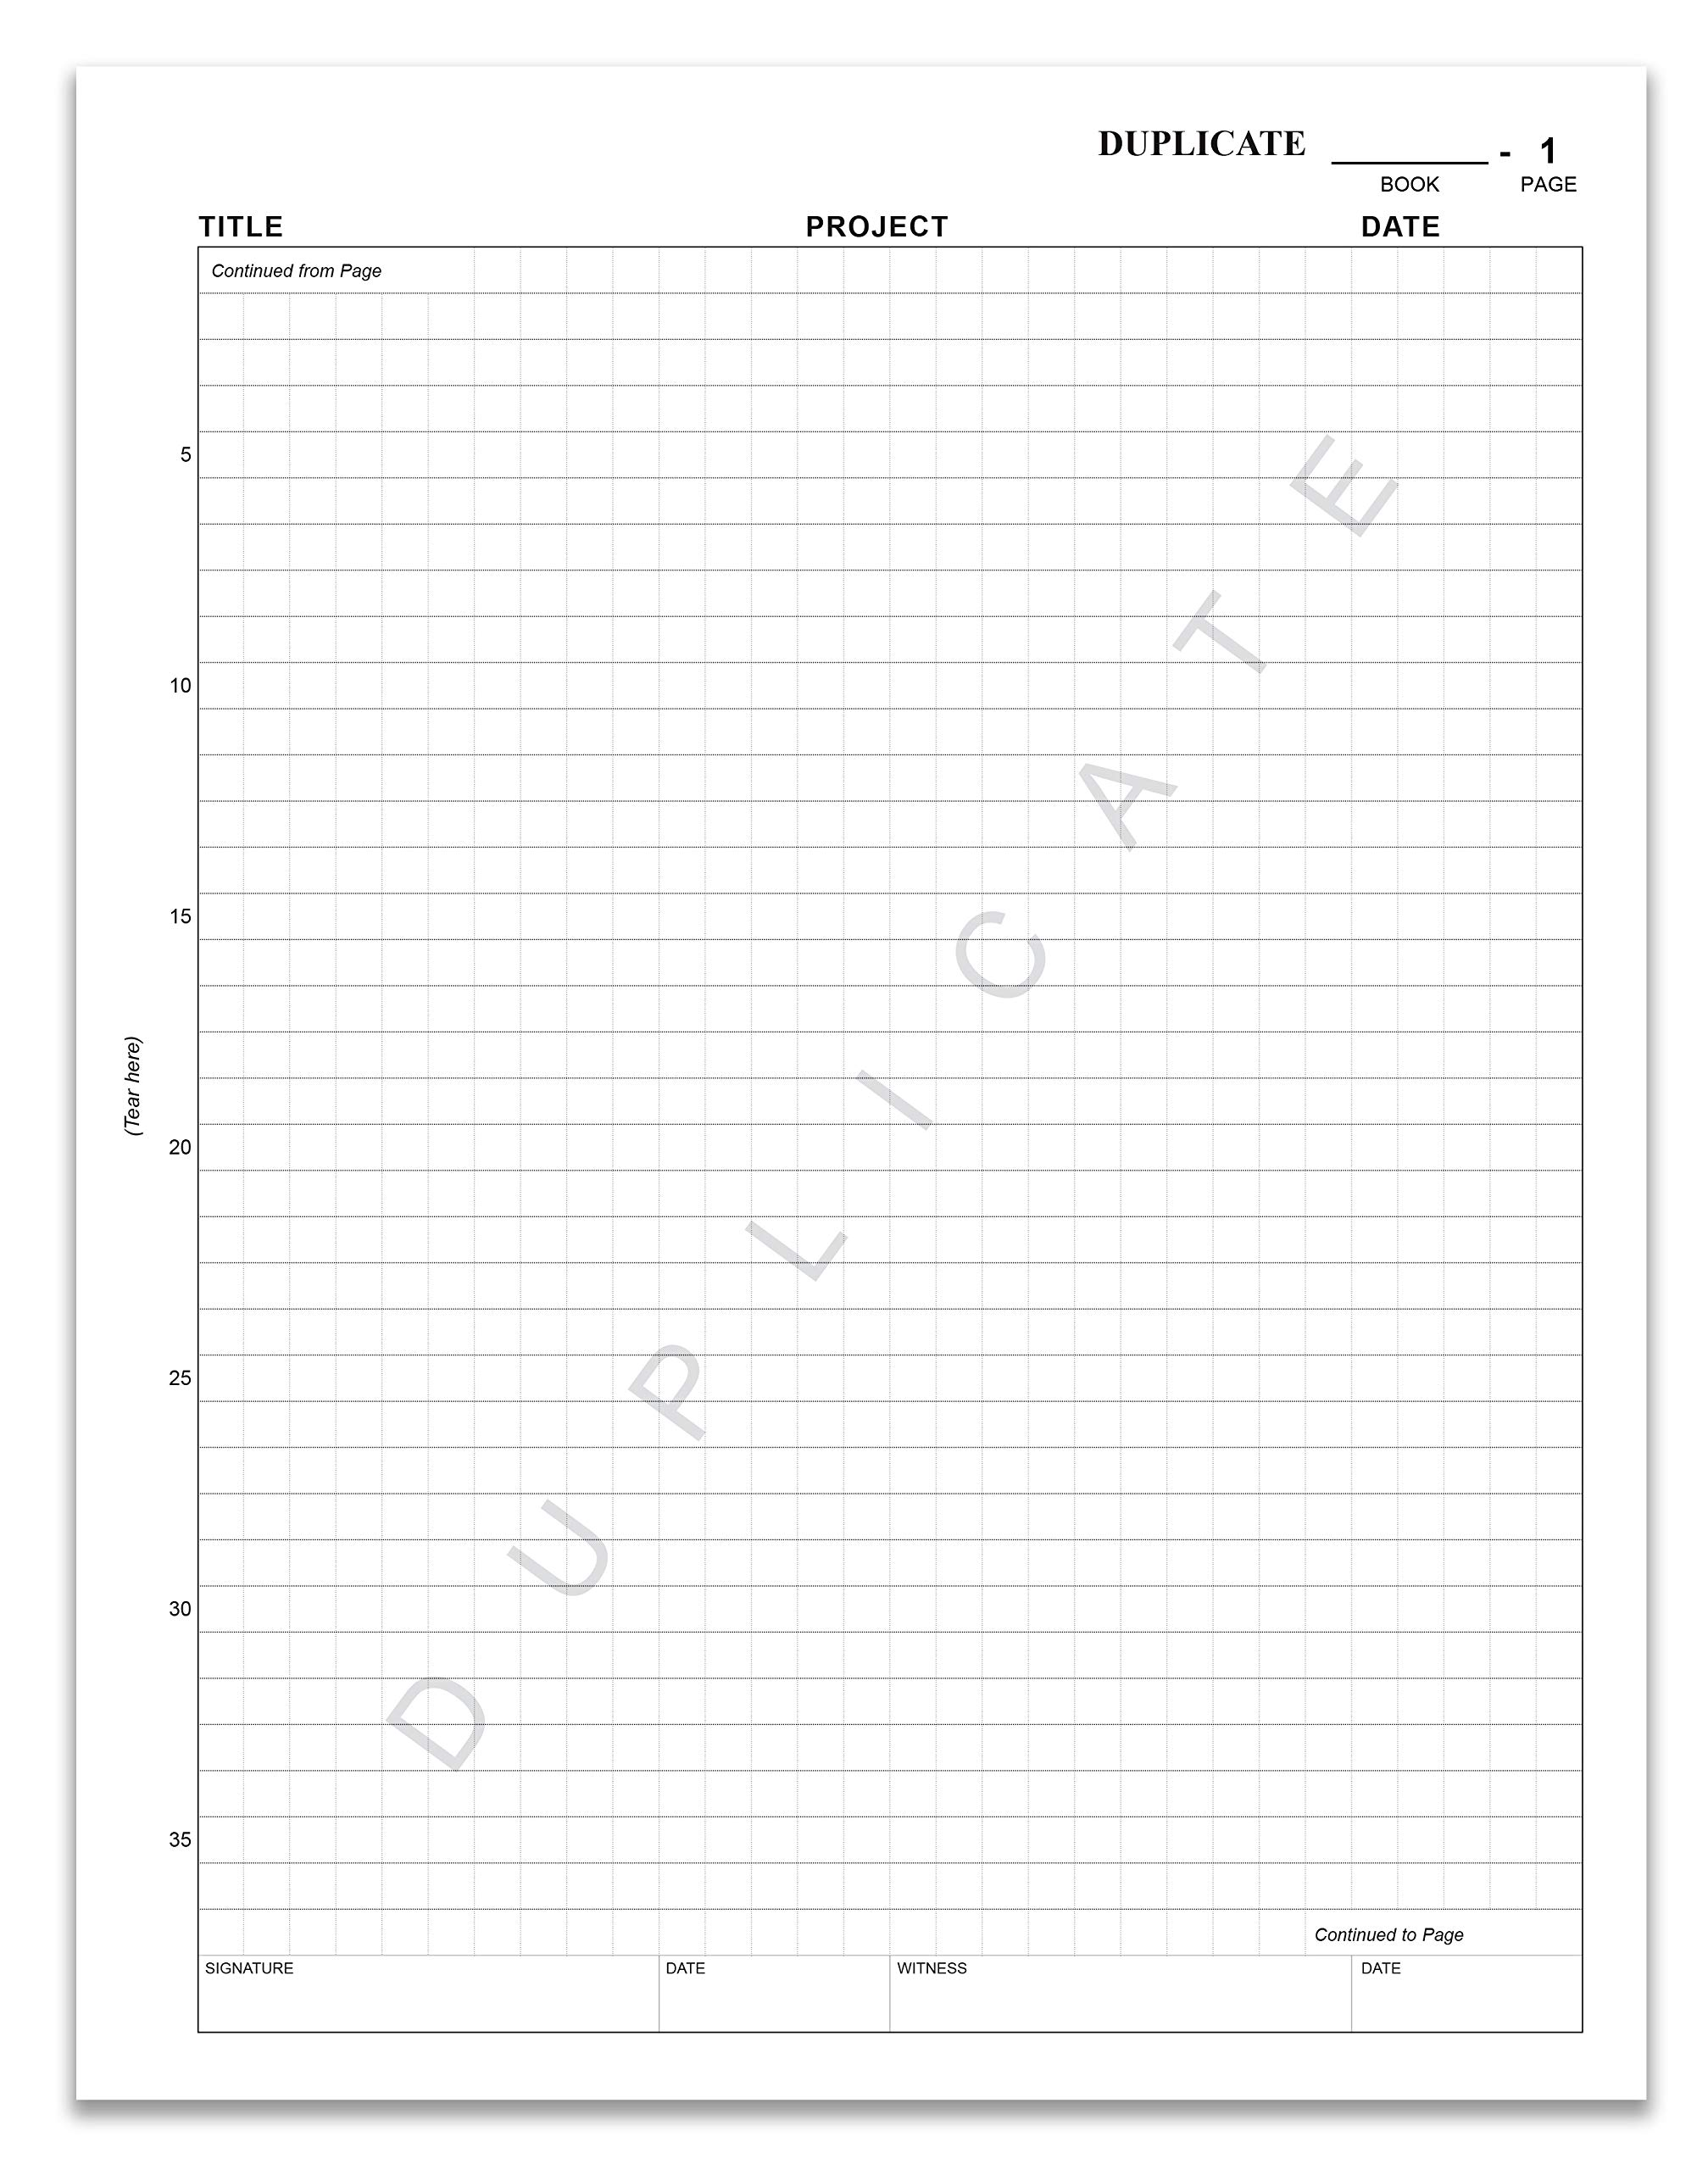 BookFactory Carbonless Biology Lab Notebook - 75 Sets of Pages (8.5'' X 11'') (Duplicator) - Scientific Grid Pages, Durable Translucent Cover, Wire-O Binding (LAB-075-7GW-D (Biology)) by BookFactory (Image #6)